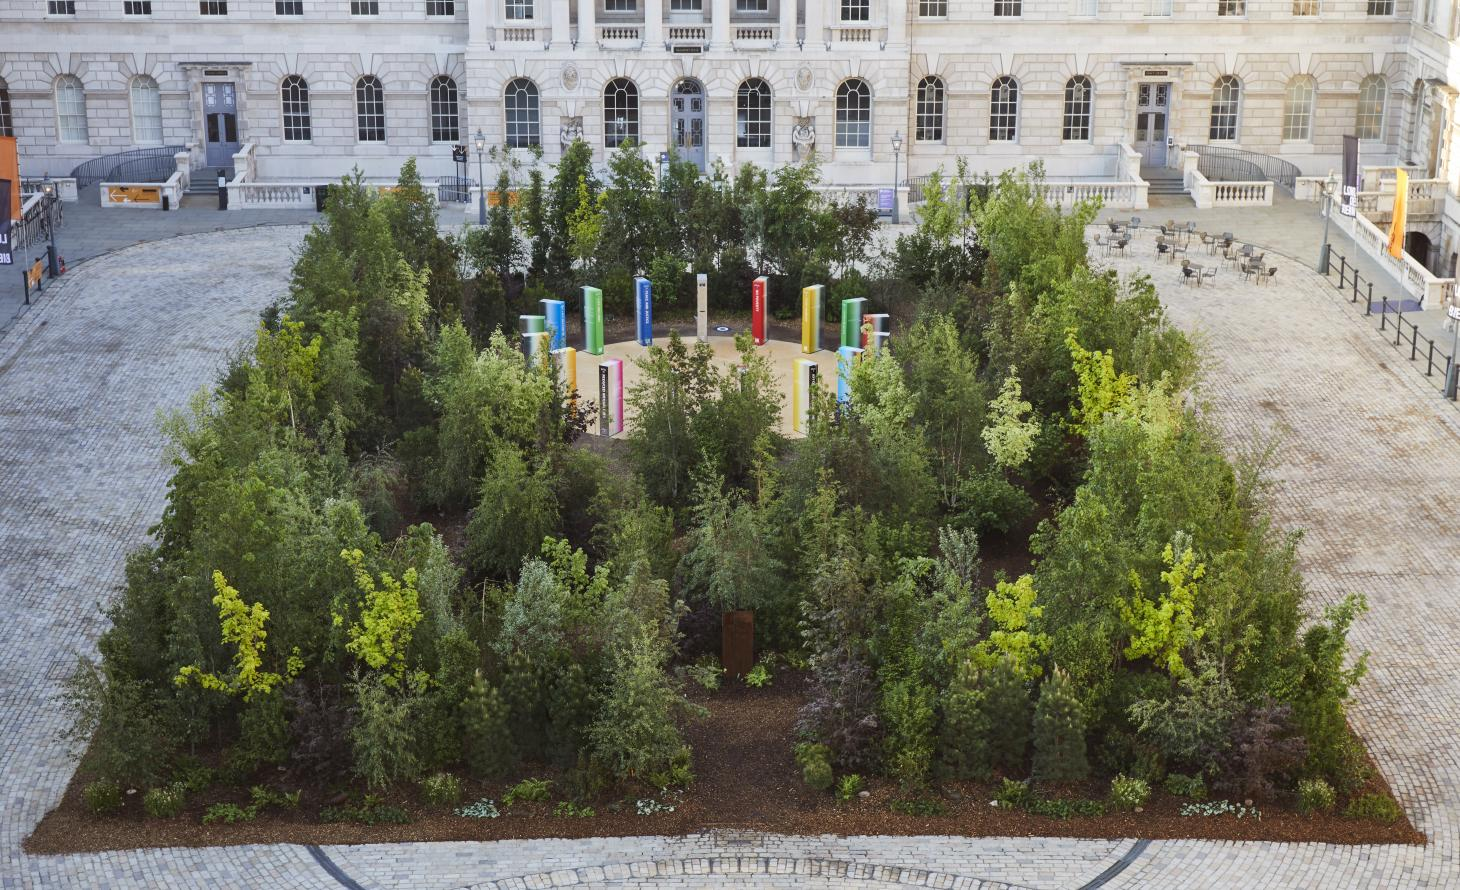 Forest installation by Es Devlin with Somerset House architecture in the backdrop